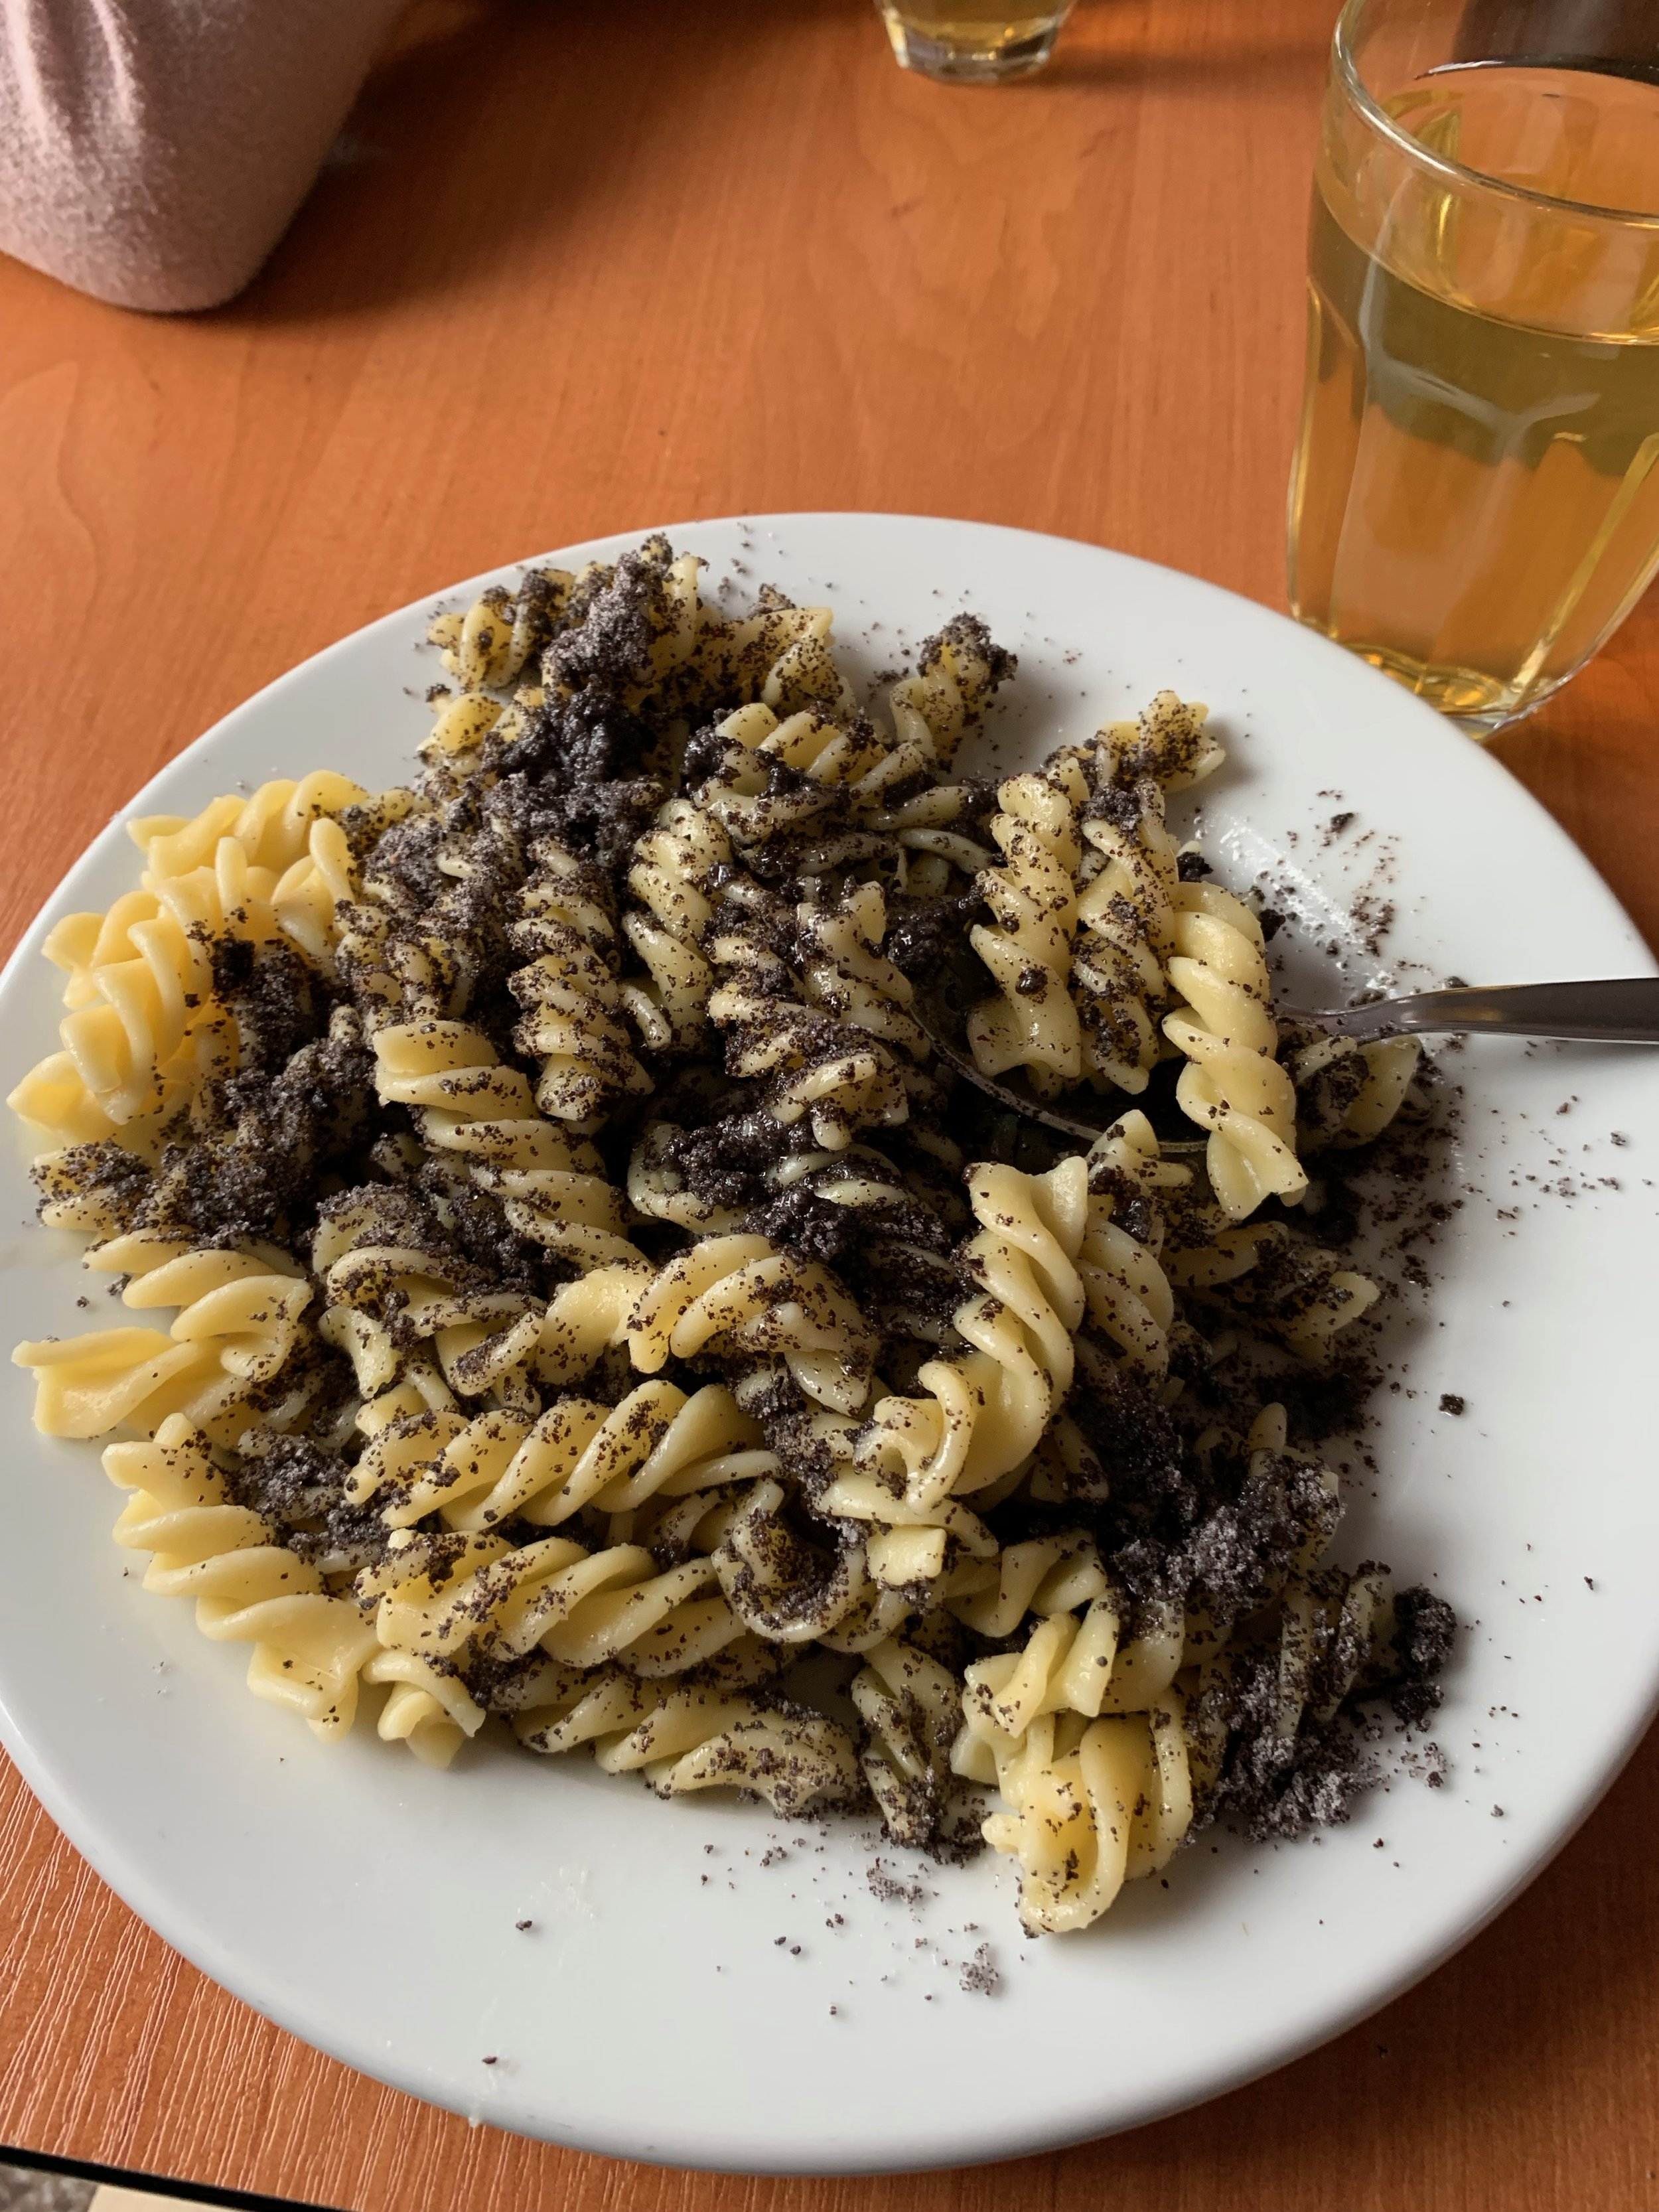 Camp food is always interesting in Czech. This is a noodle/poppy seed spread (Sladké nudle s mákem). I had no idea how this would taste at first, and it wound up being pretty good.